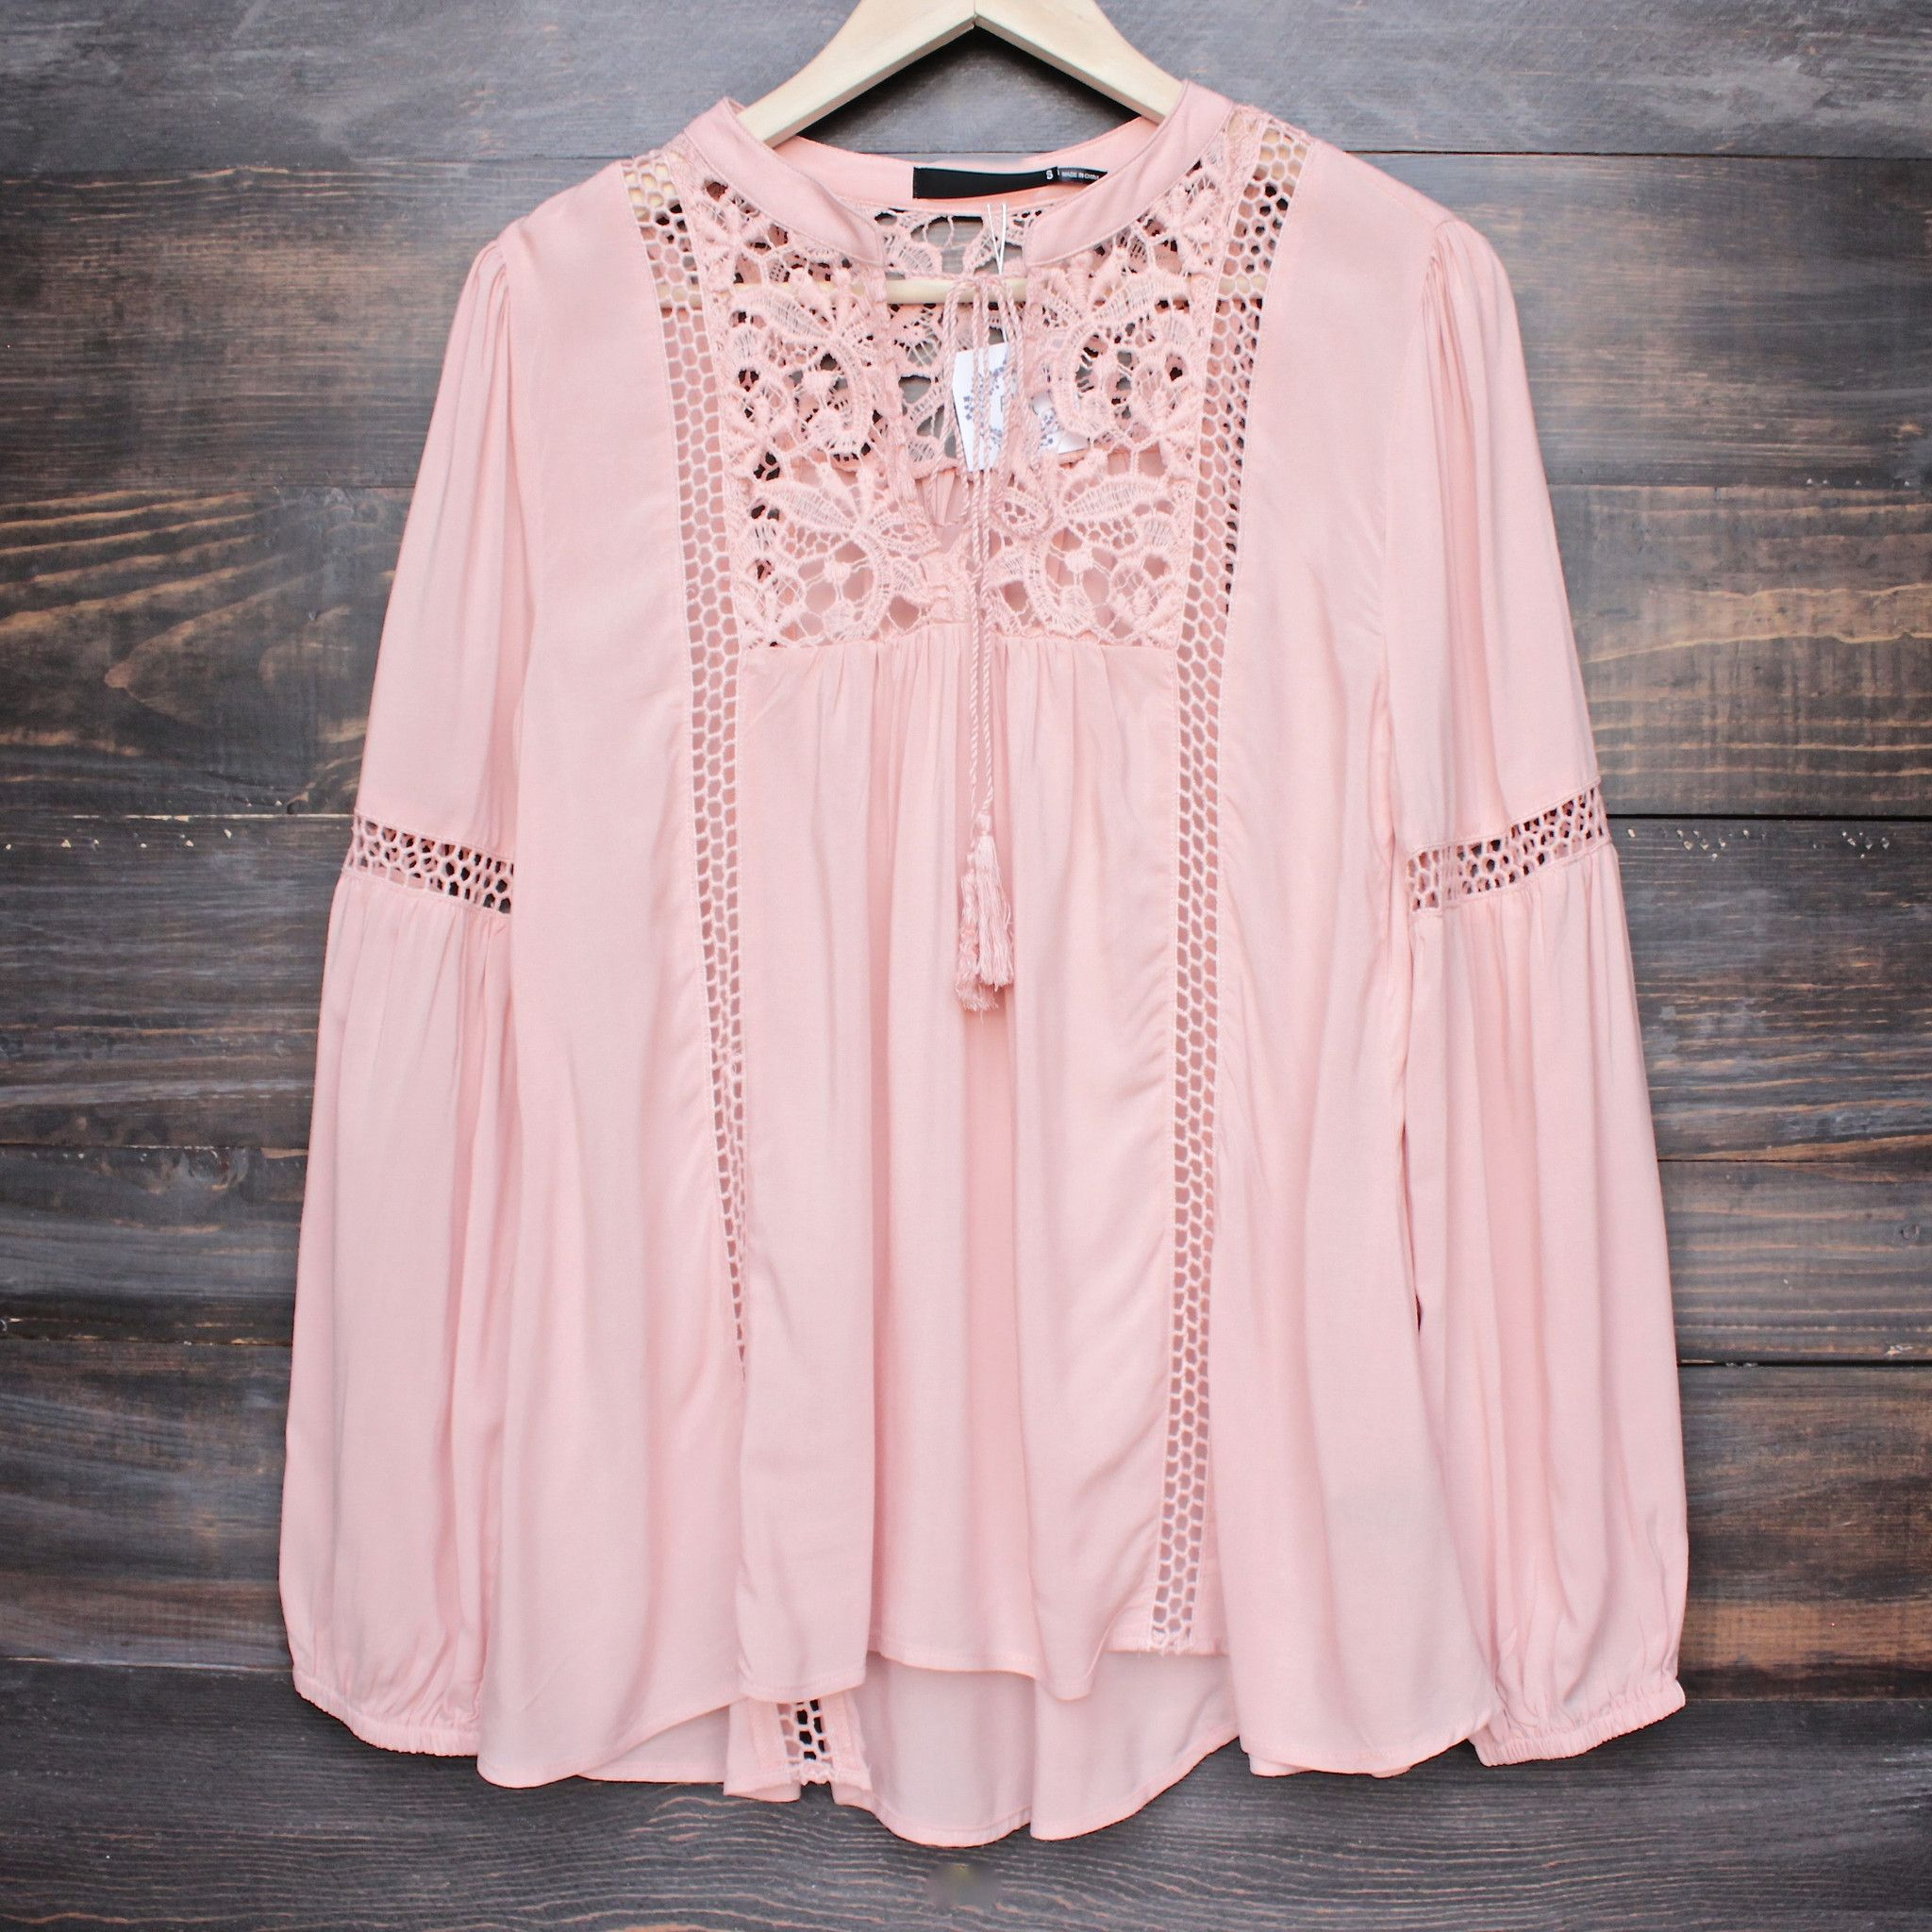 Final Sale Boho Sleeve Peasant Blouse With Lace Inset